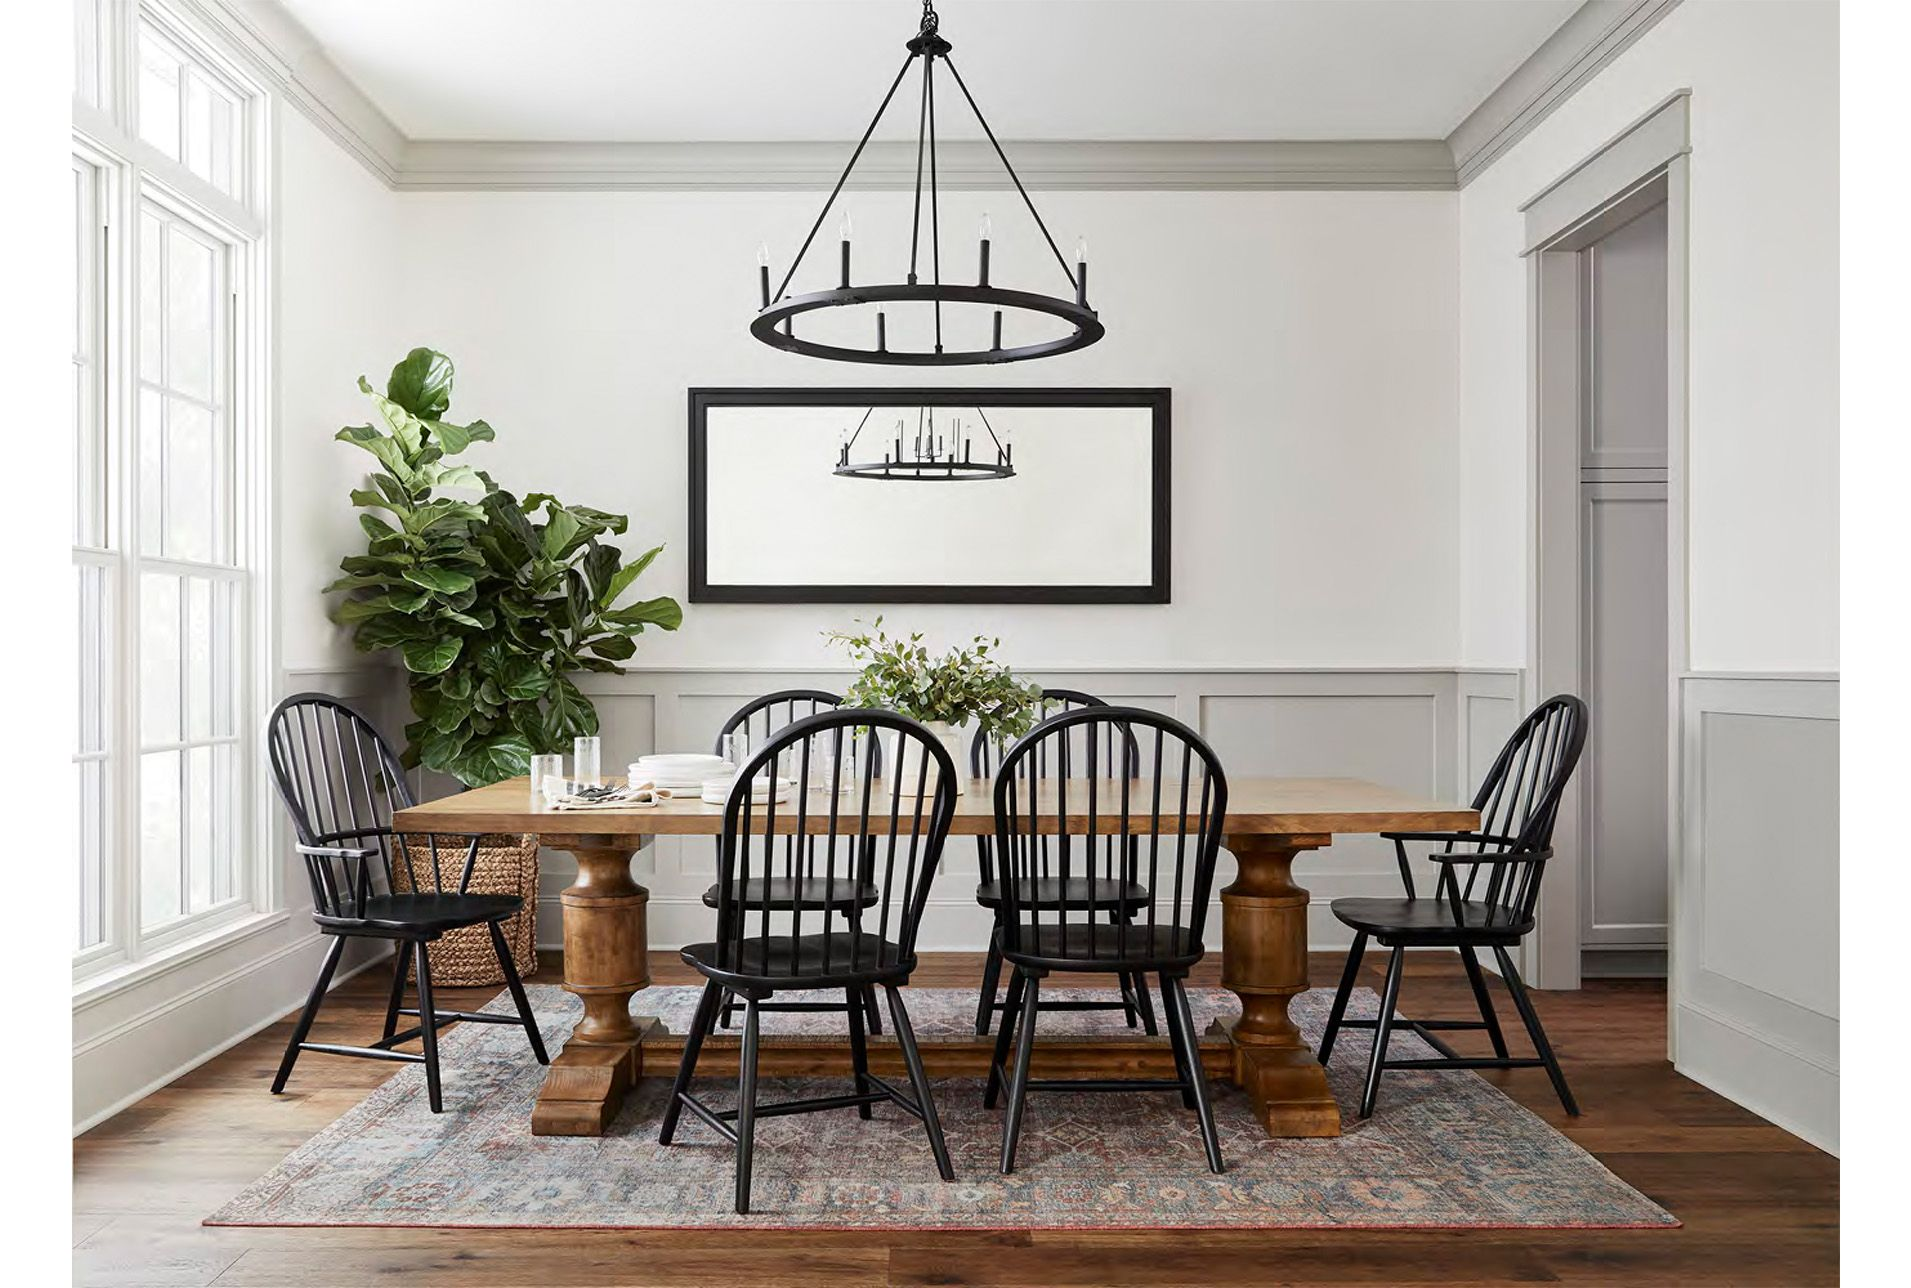 Magnolia Home Concord Dining Table By Joanna Gaines In 2020 Joanna Gaines Dining Room Modern Farmhouse Dining Side Chairs Dining